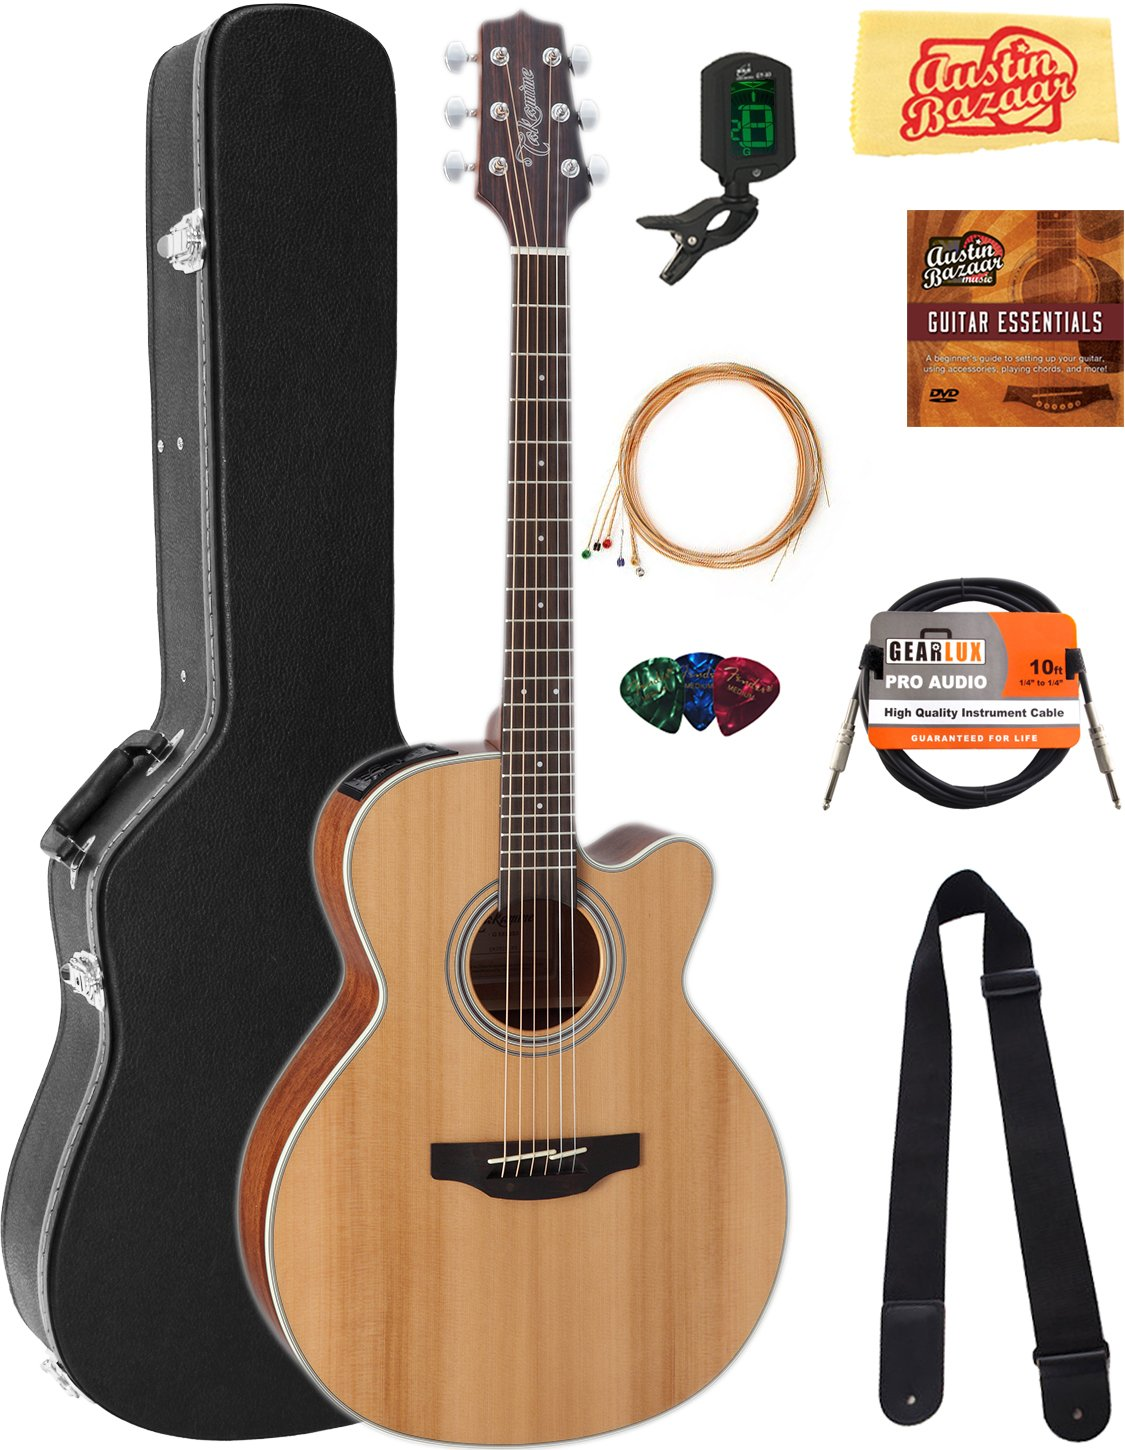 Takamine GN20CE NEX Cutaway Acoustic-Electric Guitar - Natural Satin Bundle with Hard Case, Cable, Tuner, Strap, Strings, Picks, Austin Bazaar Instructional DVD, and Polishing Cloth by Takamine